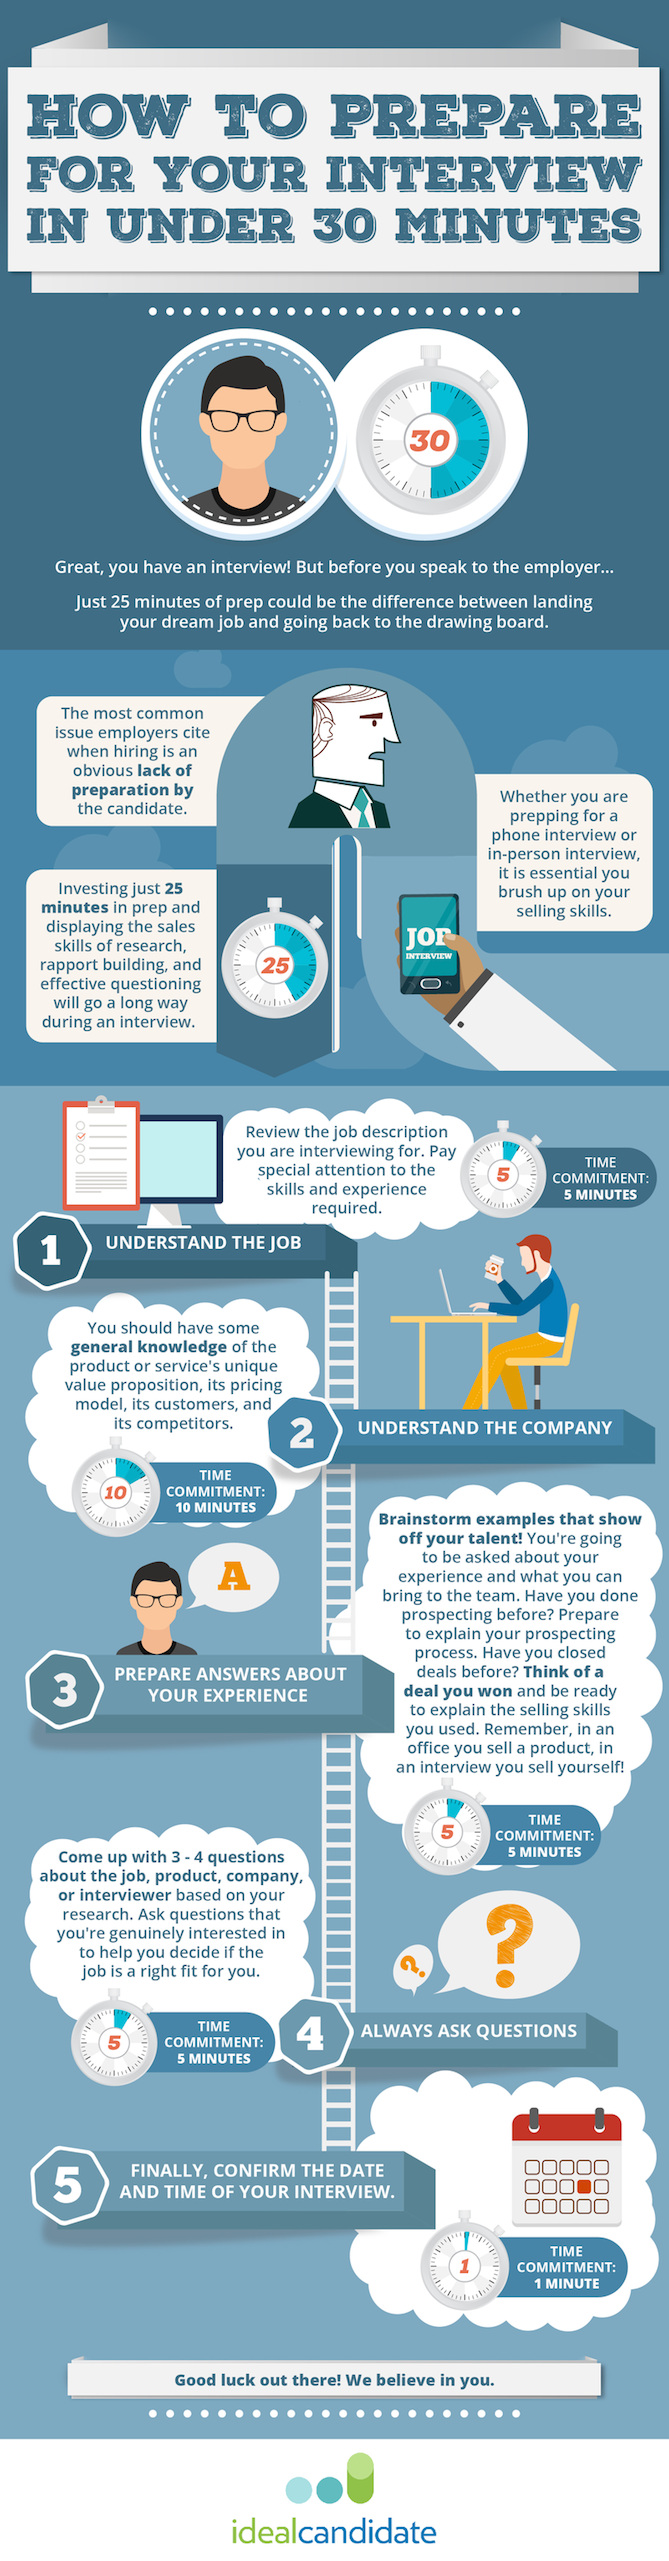 How To Prepare For A Job Interview: The 25 Minute Routine That Can Make A  Big Difference [Infographic]